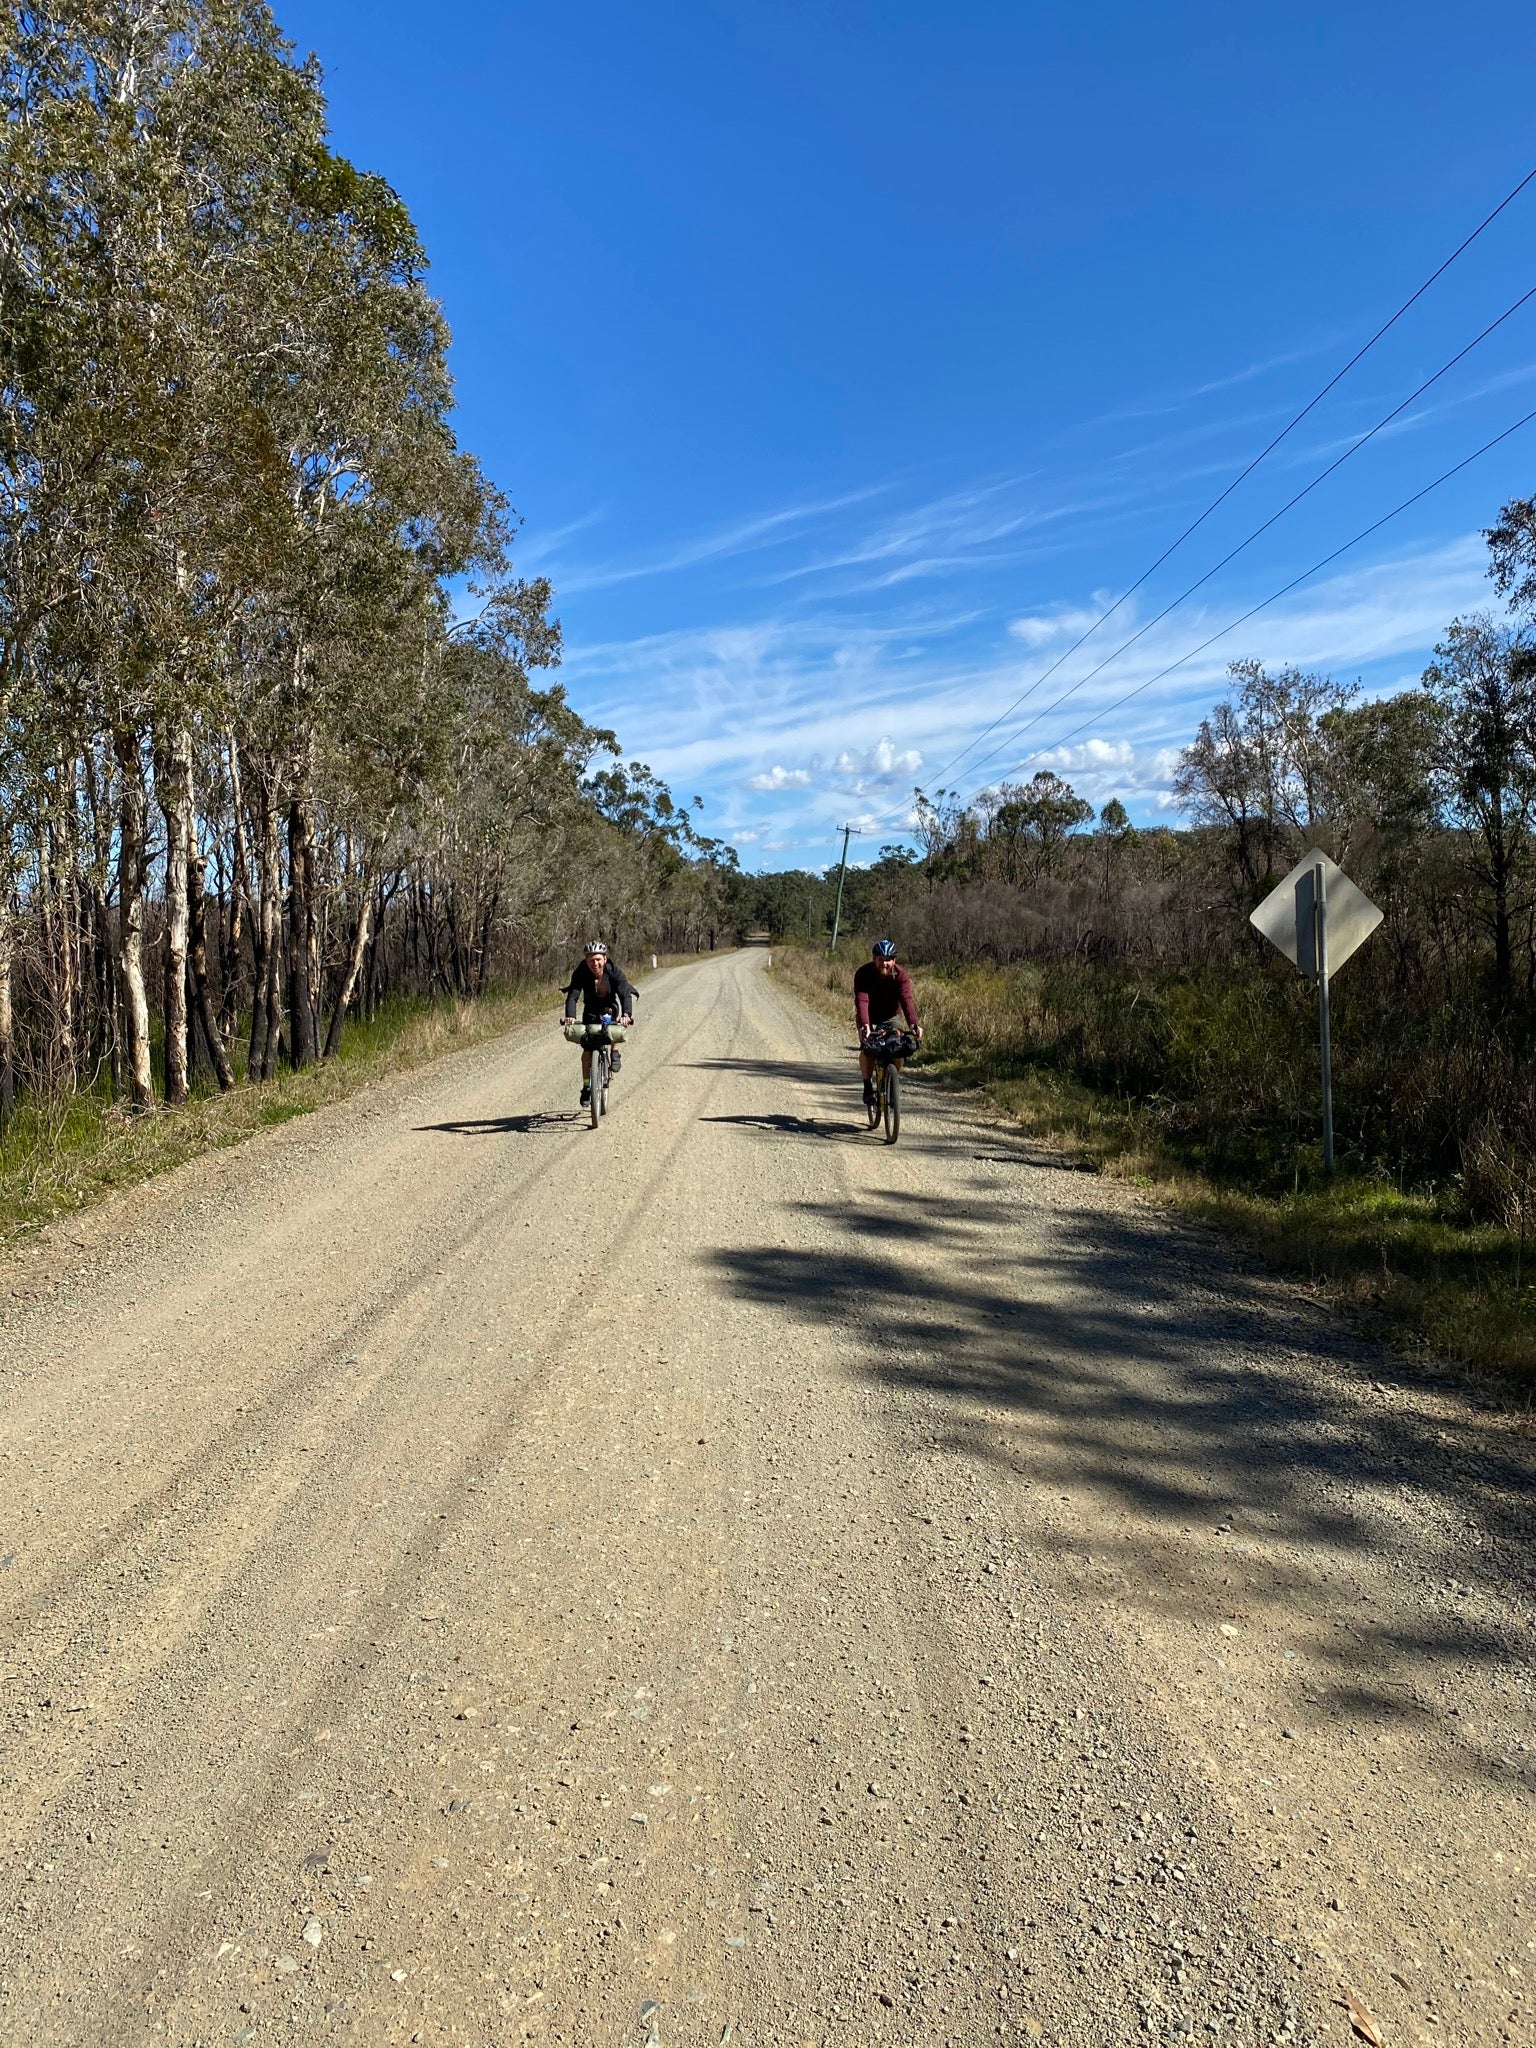 cyclists gravel road